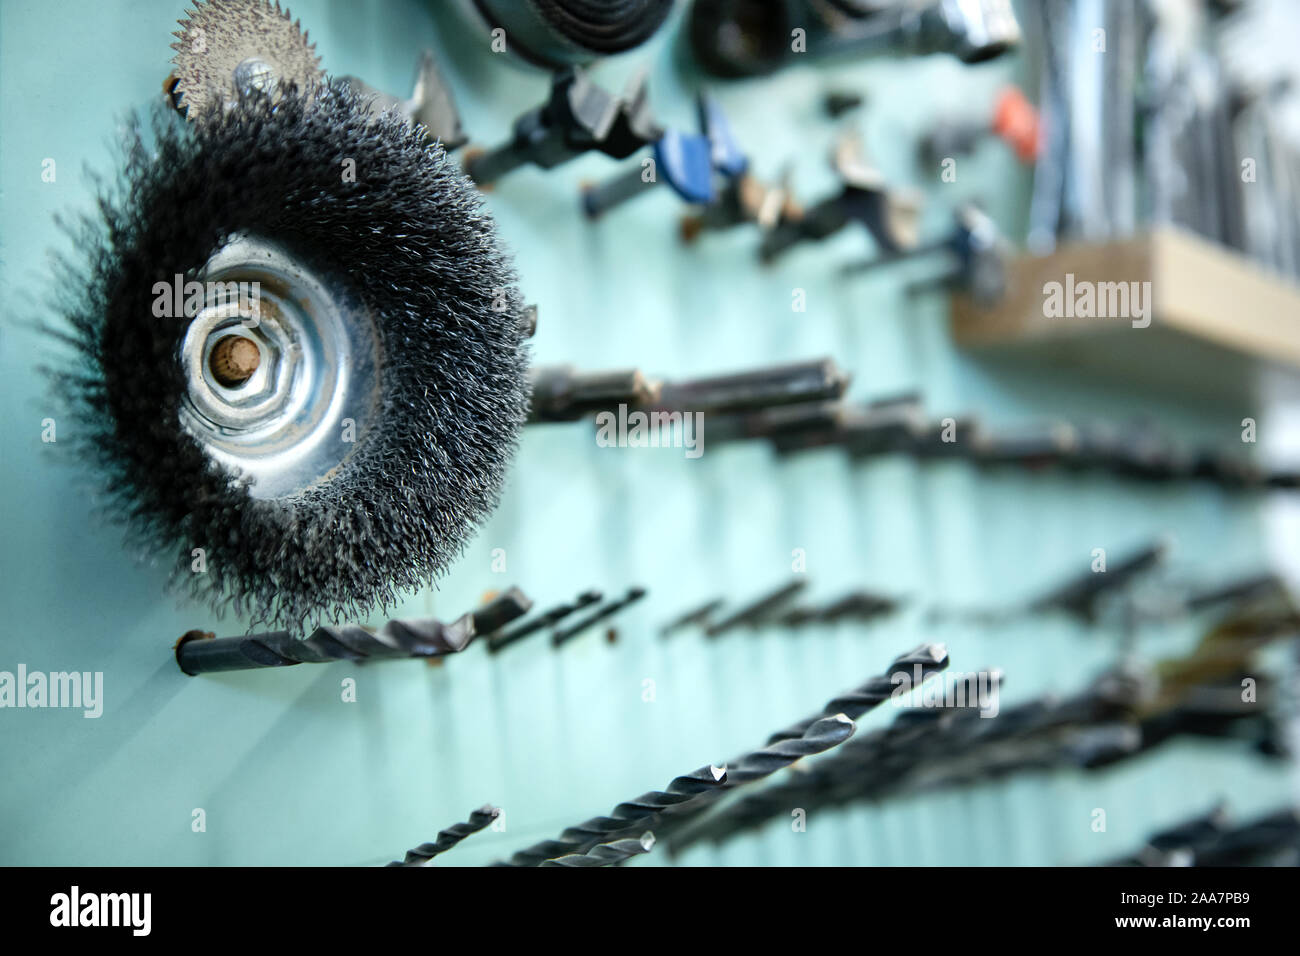 Neatly organised selection of woodworking tools on a wall in a carpentry workshop in a close up view on drill bits Stock Photo